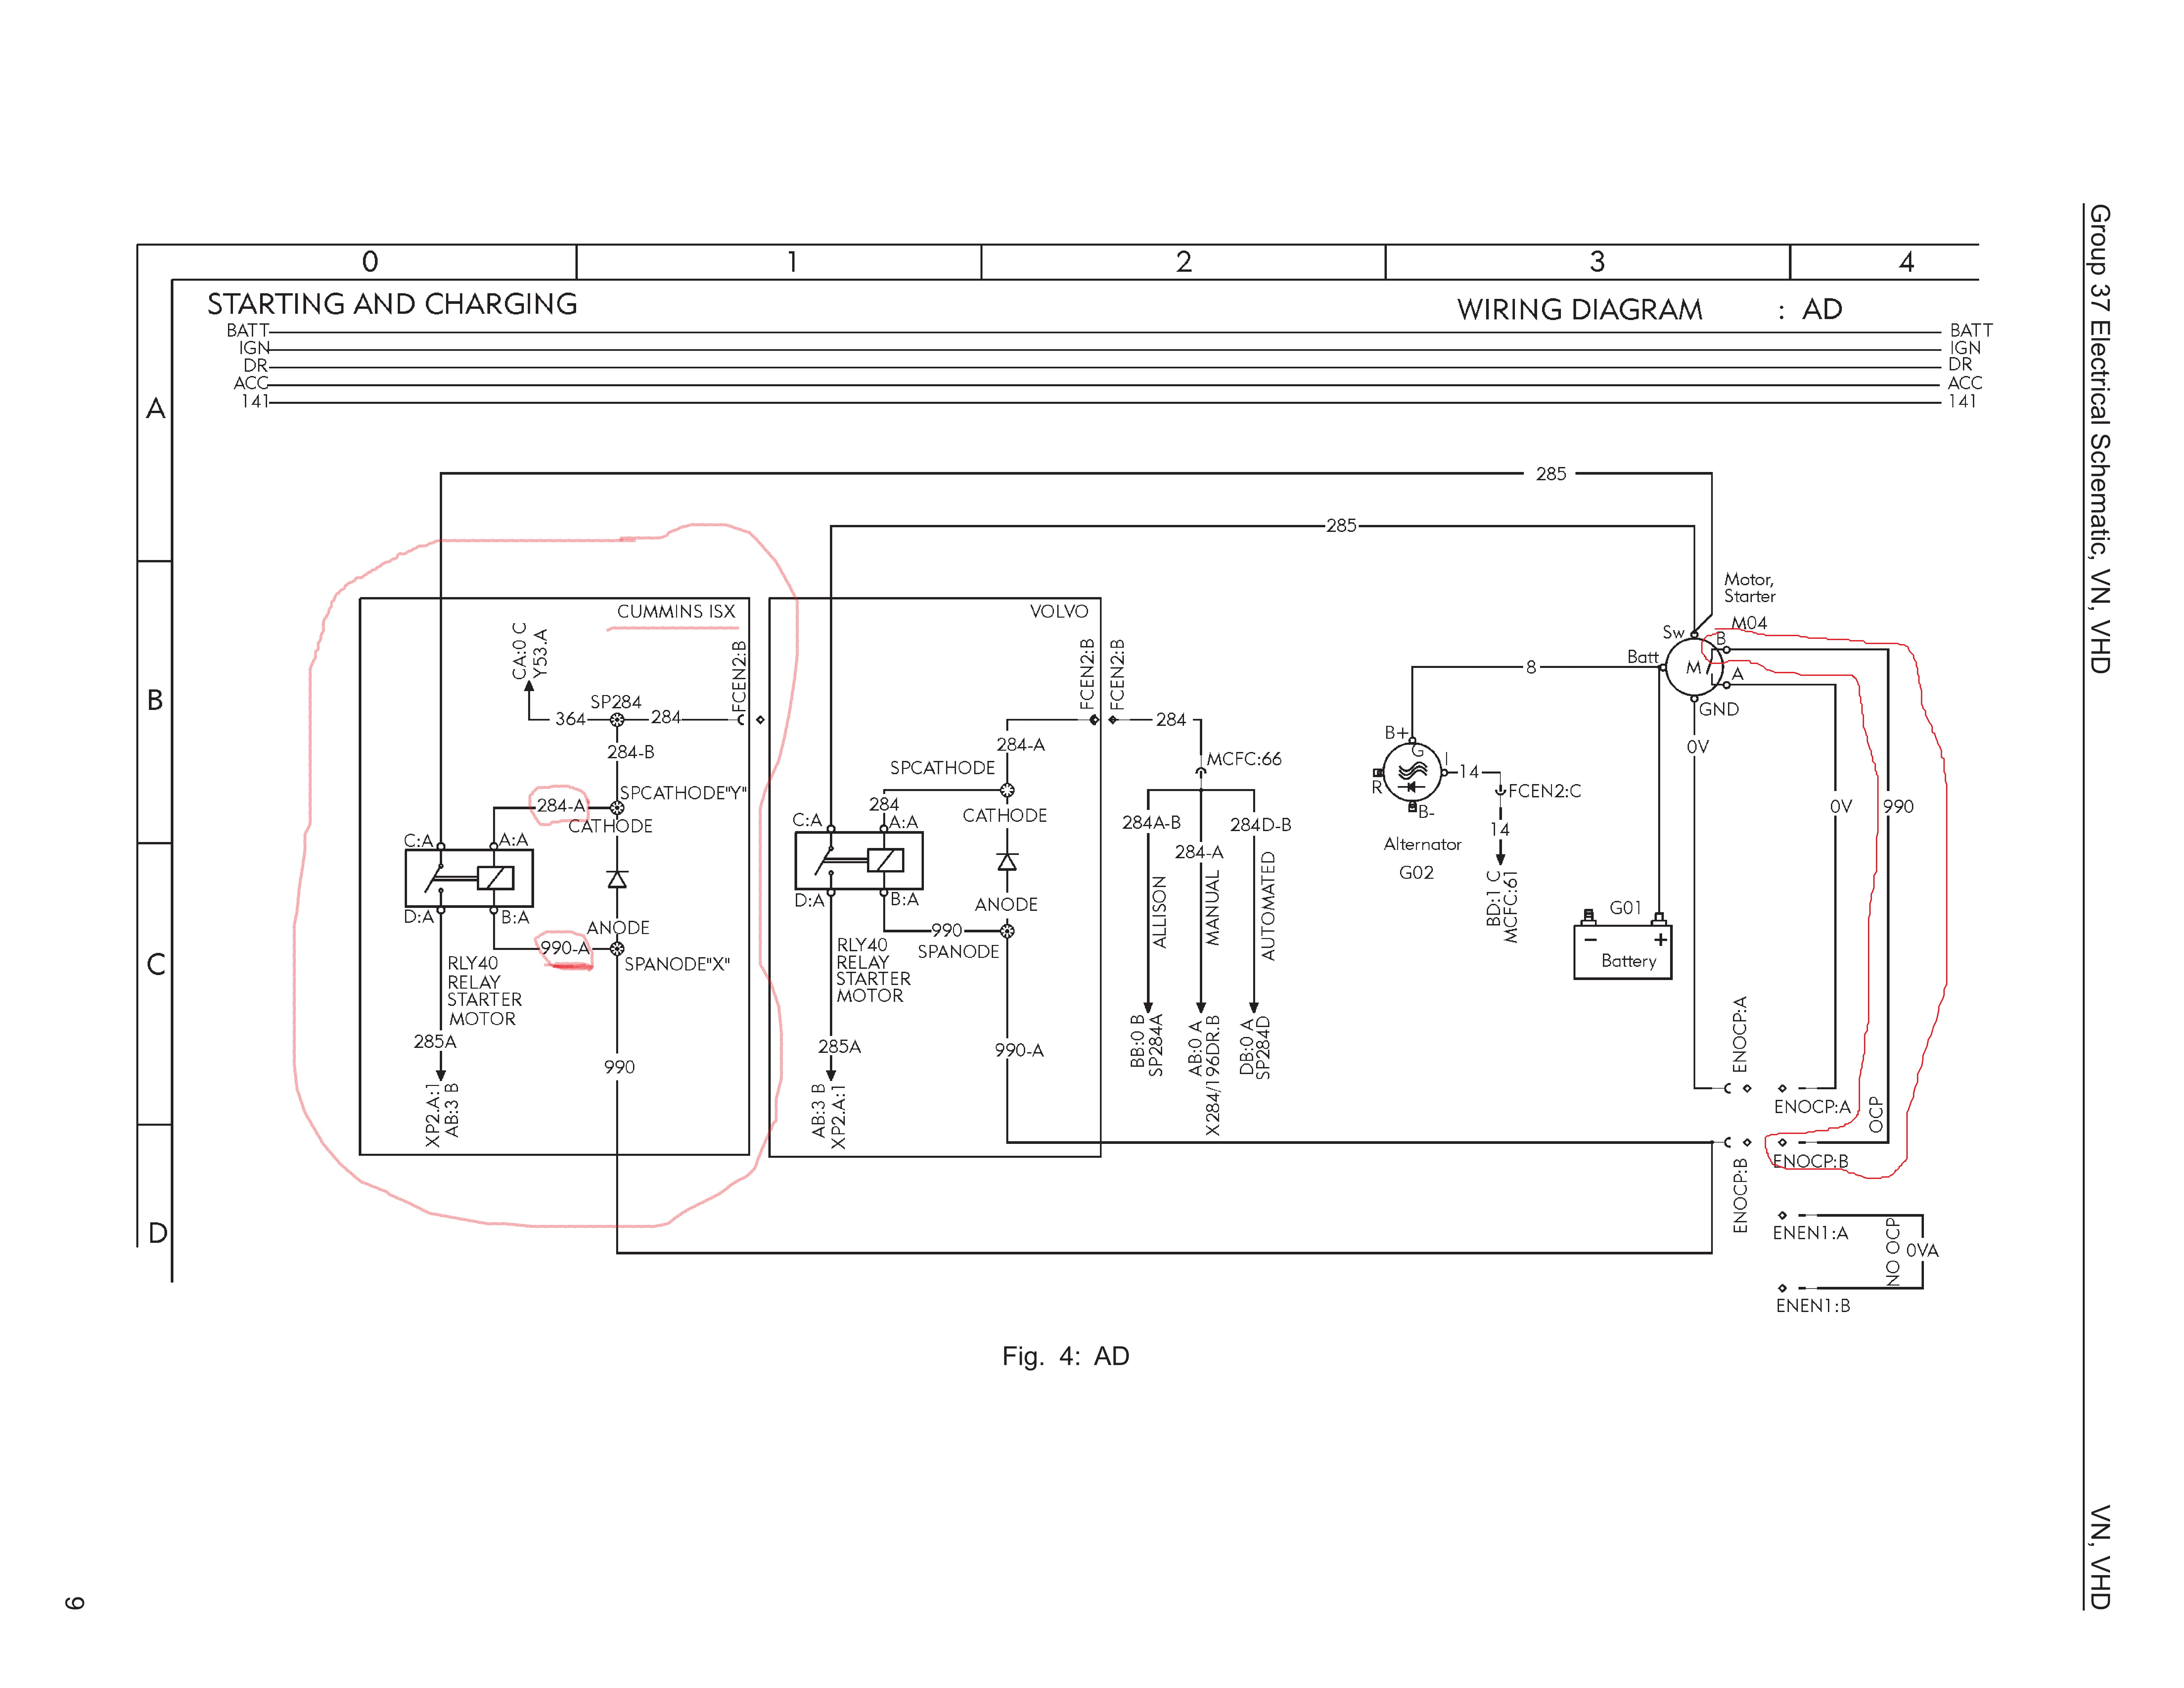 Please Help No Click Crank I Have 2007 Volvo Vnl With Isx Cm870 770 Fuse Box Diagram Electrical Schematic1